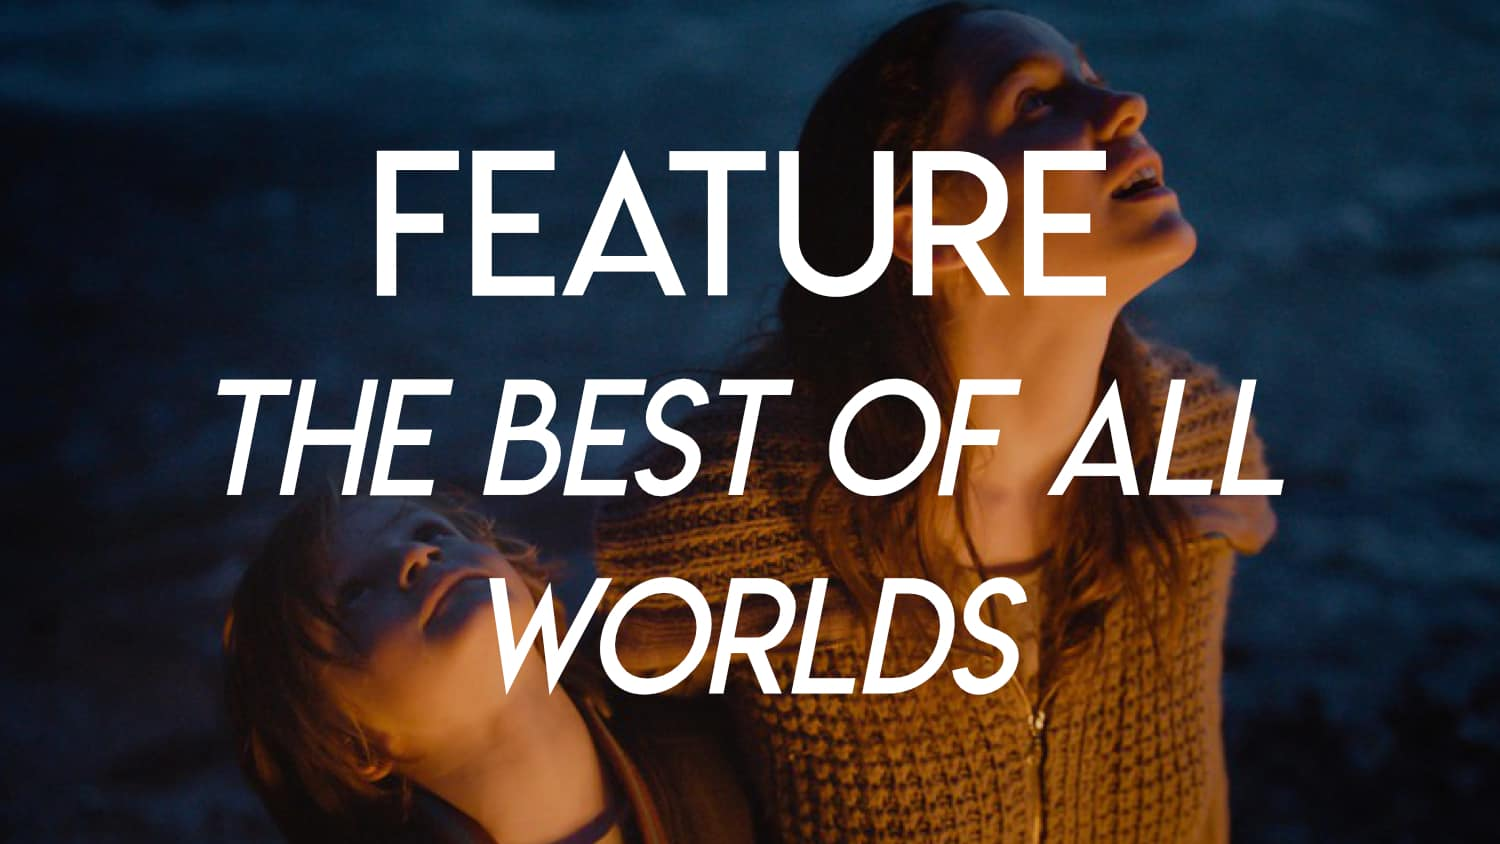 Toronto Lift-Off Film Festival 2018 - feature - The Best of All Worlds